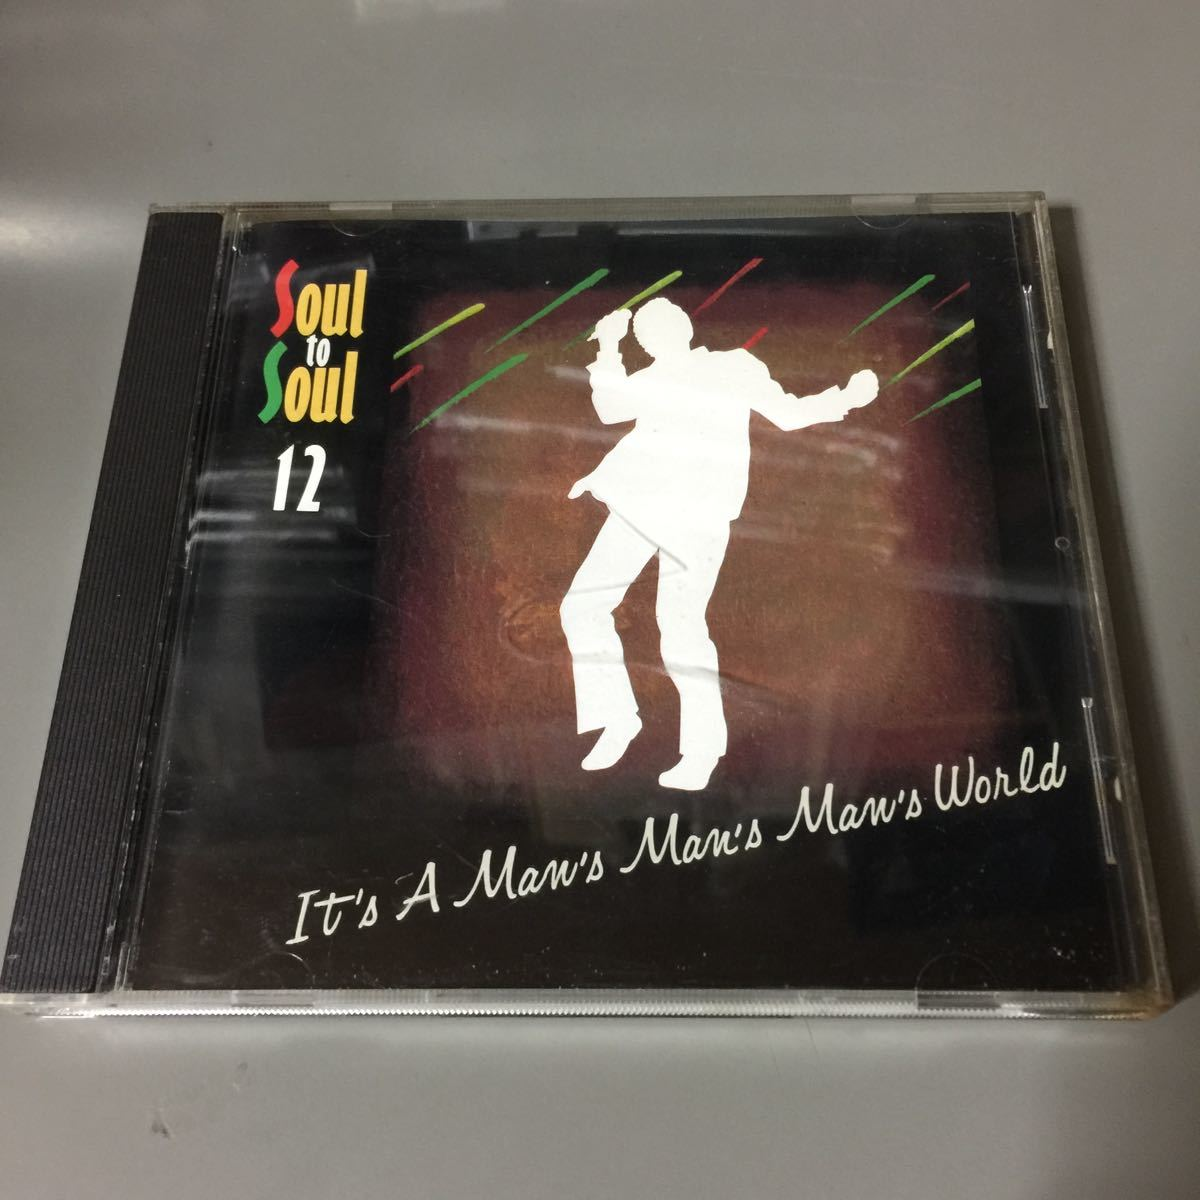 Soul to Soul 12 ジェイムス・ブラウン【IT'S A MAN'S MAN'S WORLD】国内盤CD